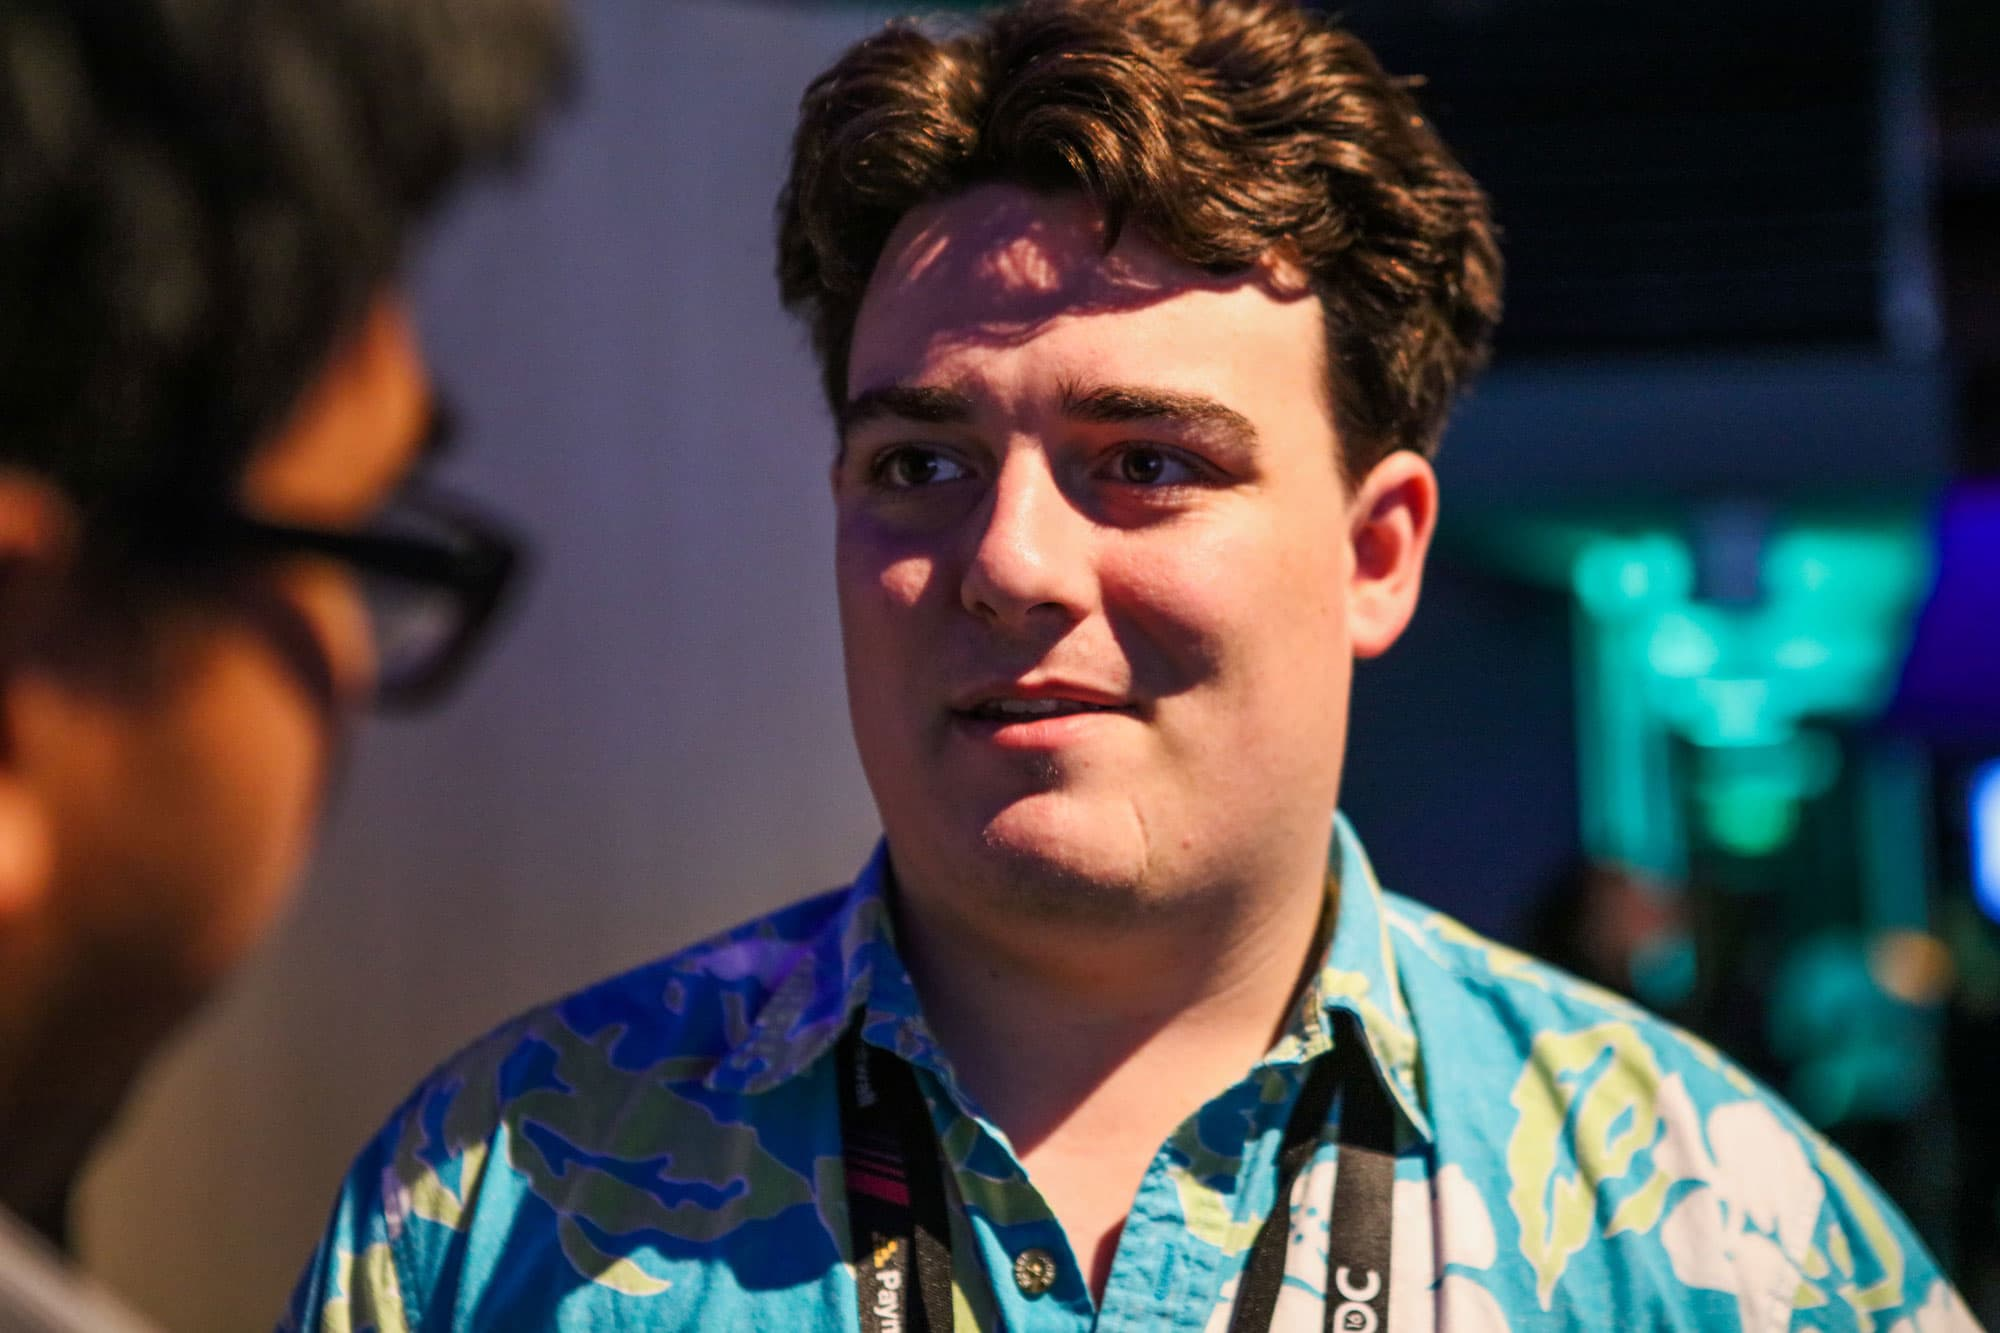 Oculus founder Palmer Luckey's defense start-up is now making attack drones